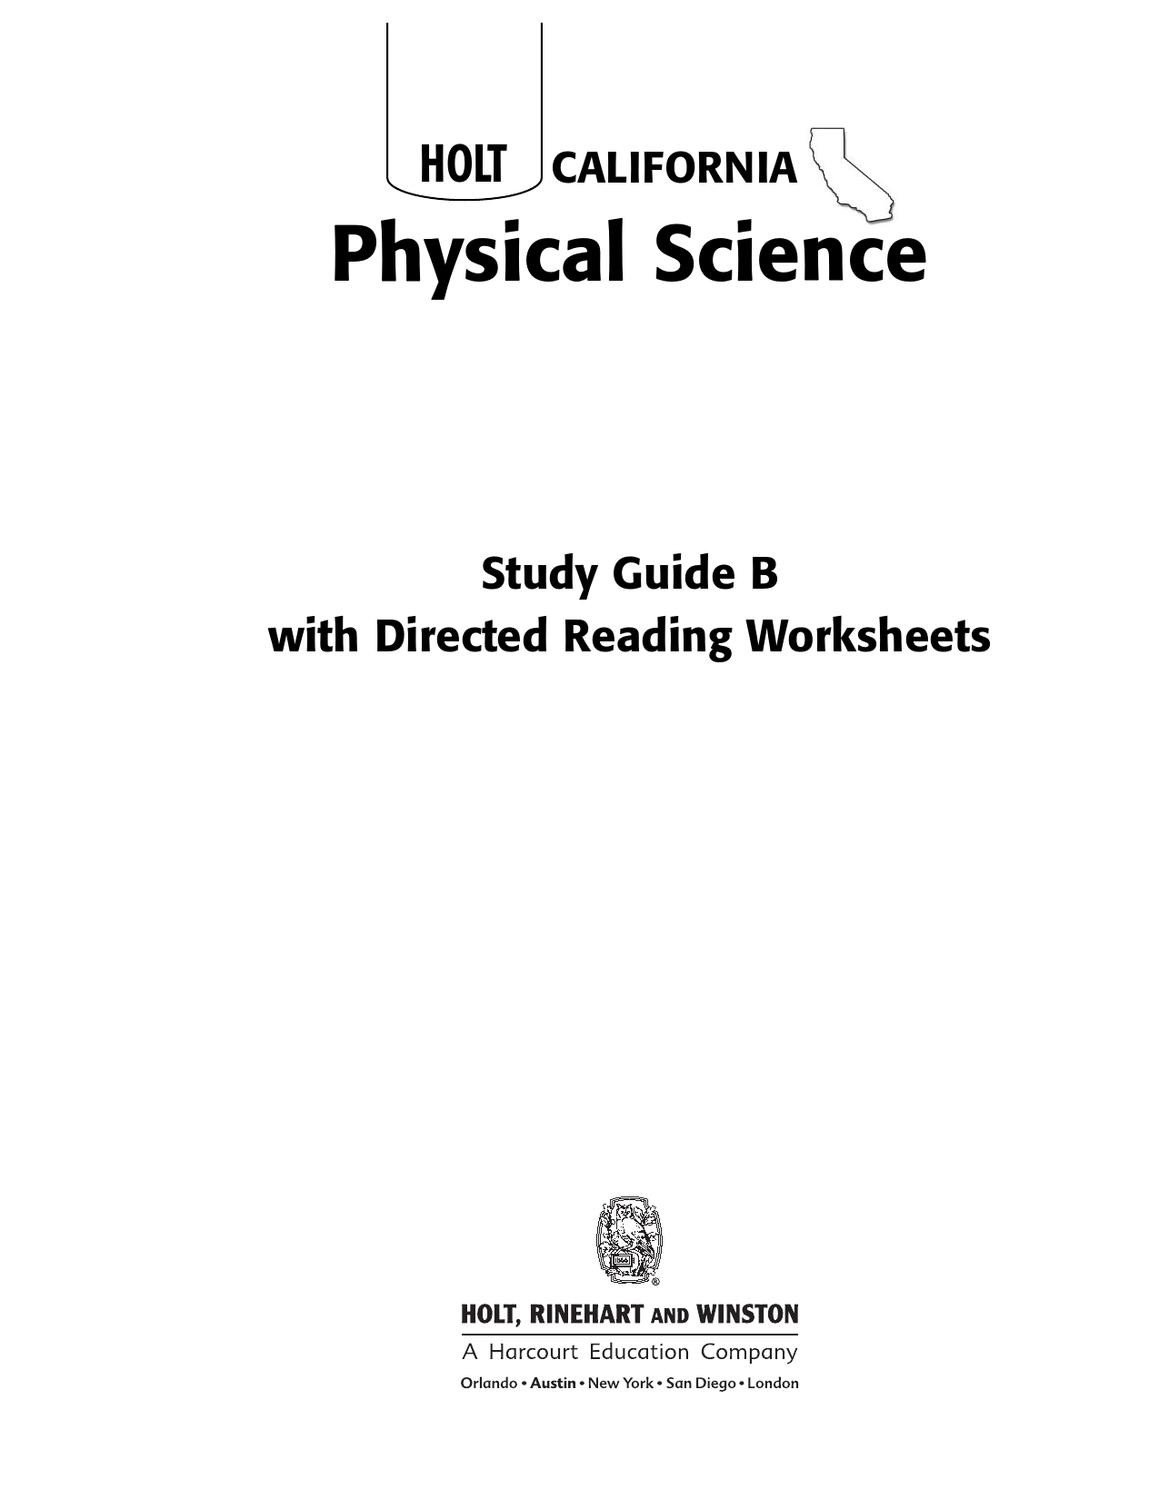 Eighth Grade Science Worksheets 8th Grade Science Worksheets by Lance Green issuu